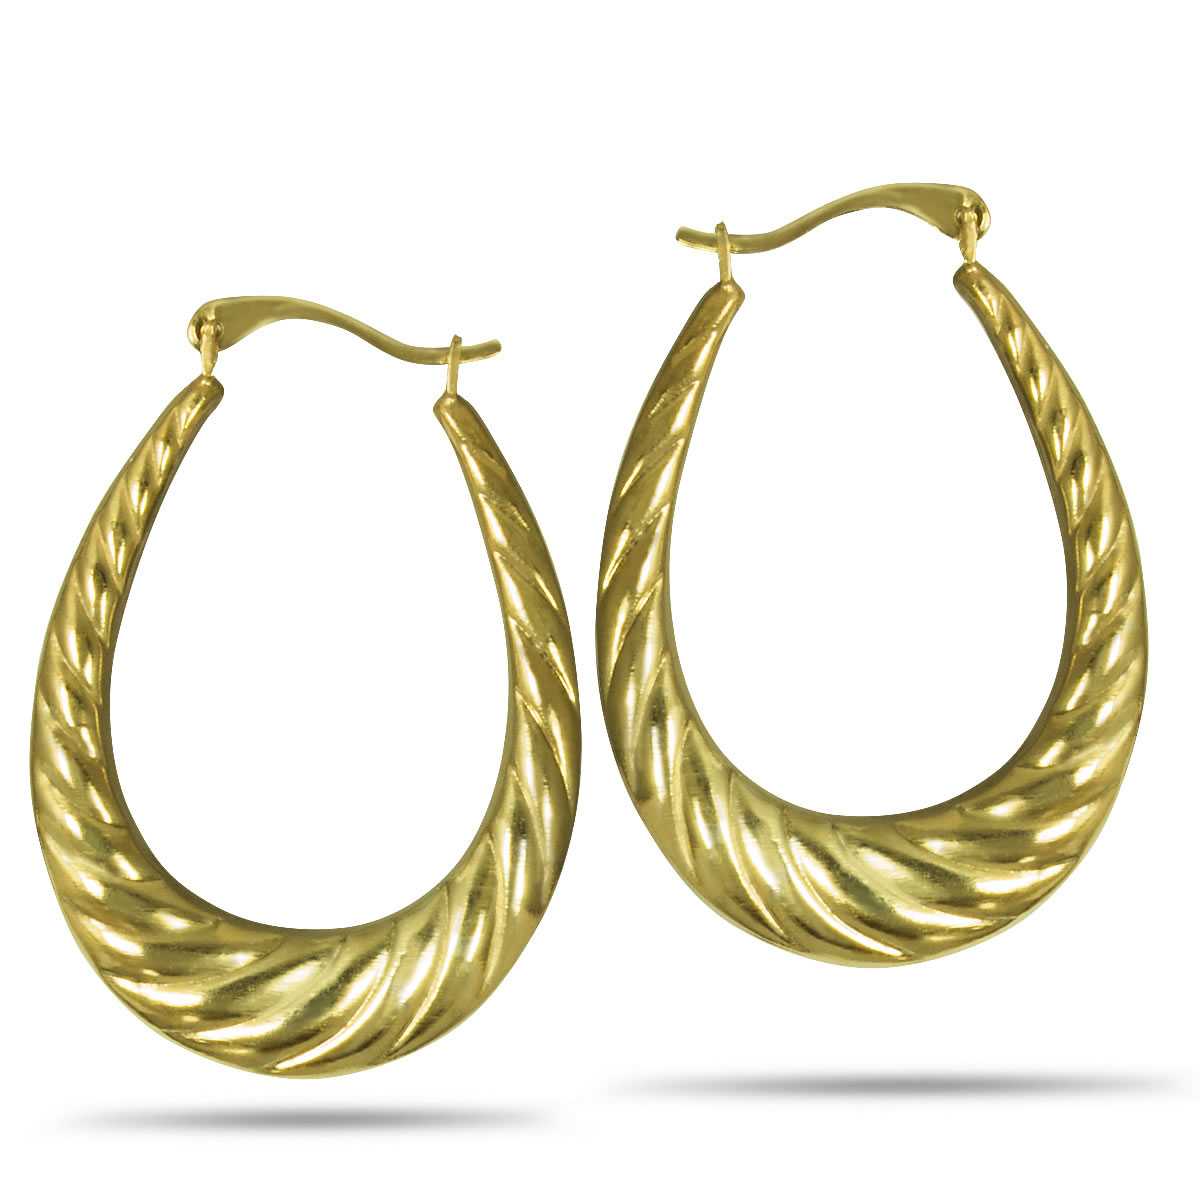 Gold Plated, Sterling Silver Oval Ridge Creole Hoop Earrings